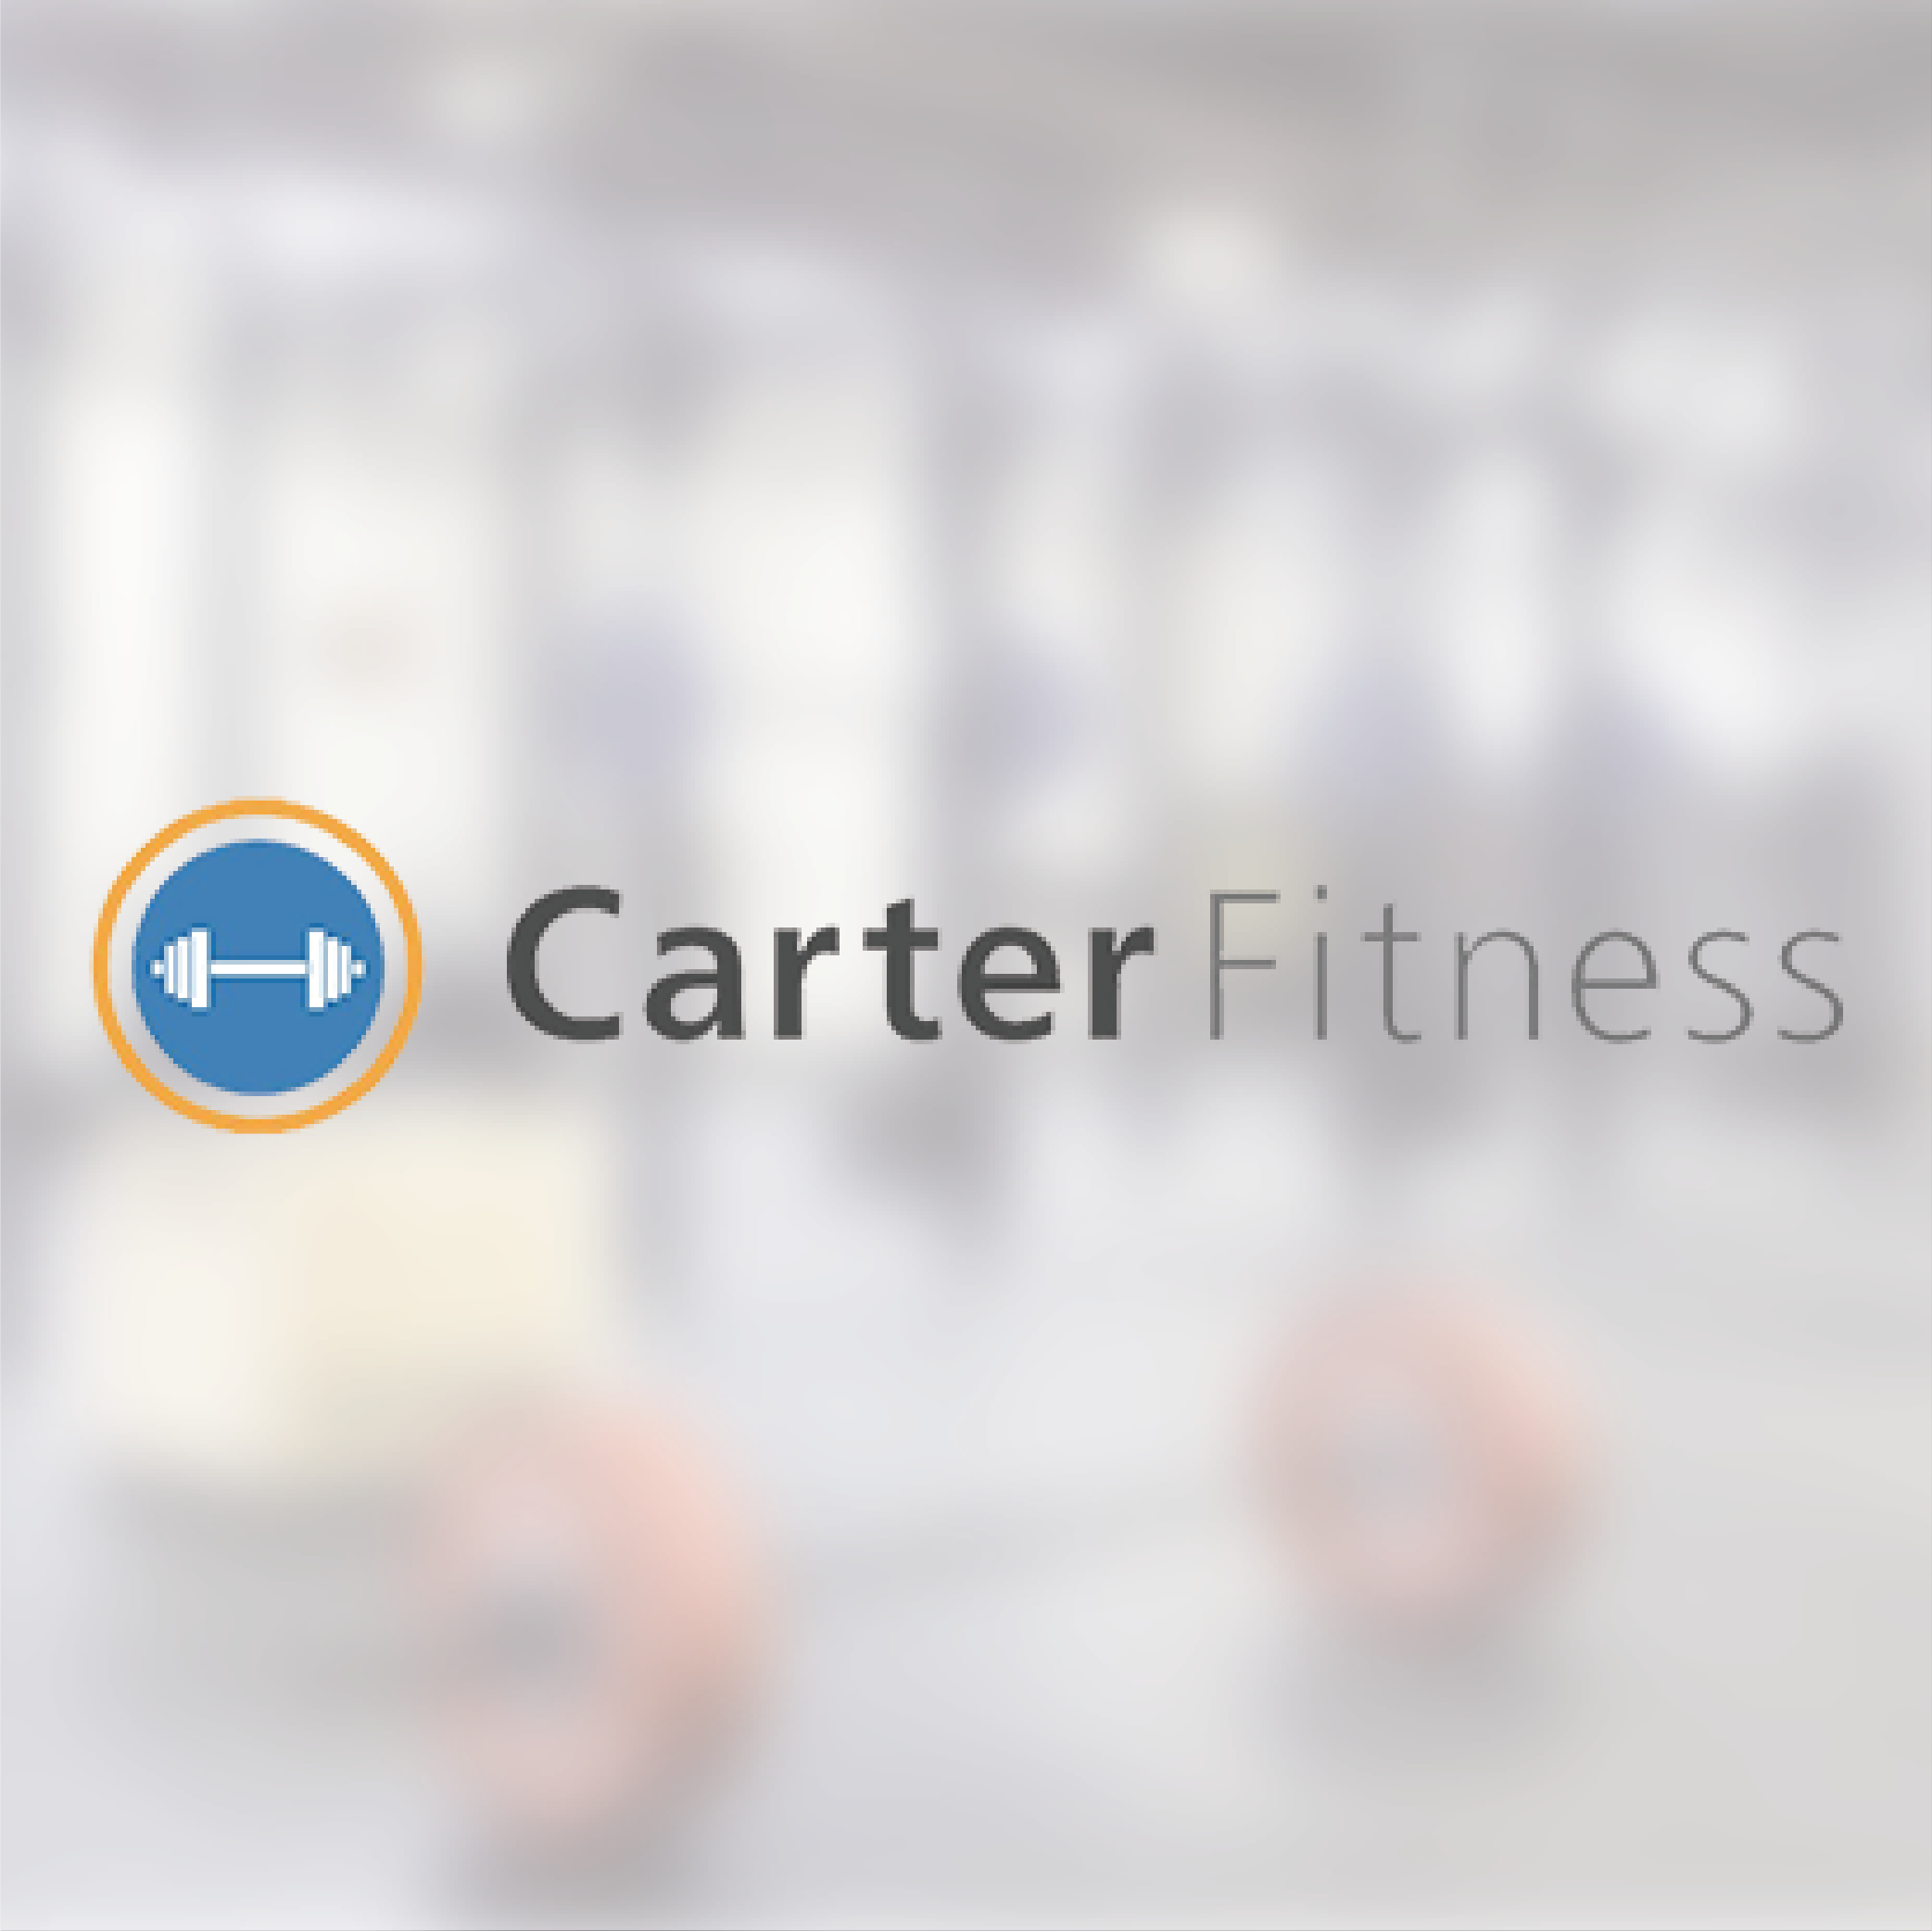 PP Gym Logo Icons_Carter Fitness.png